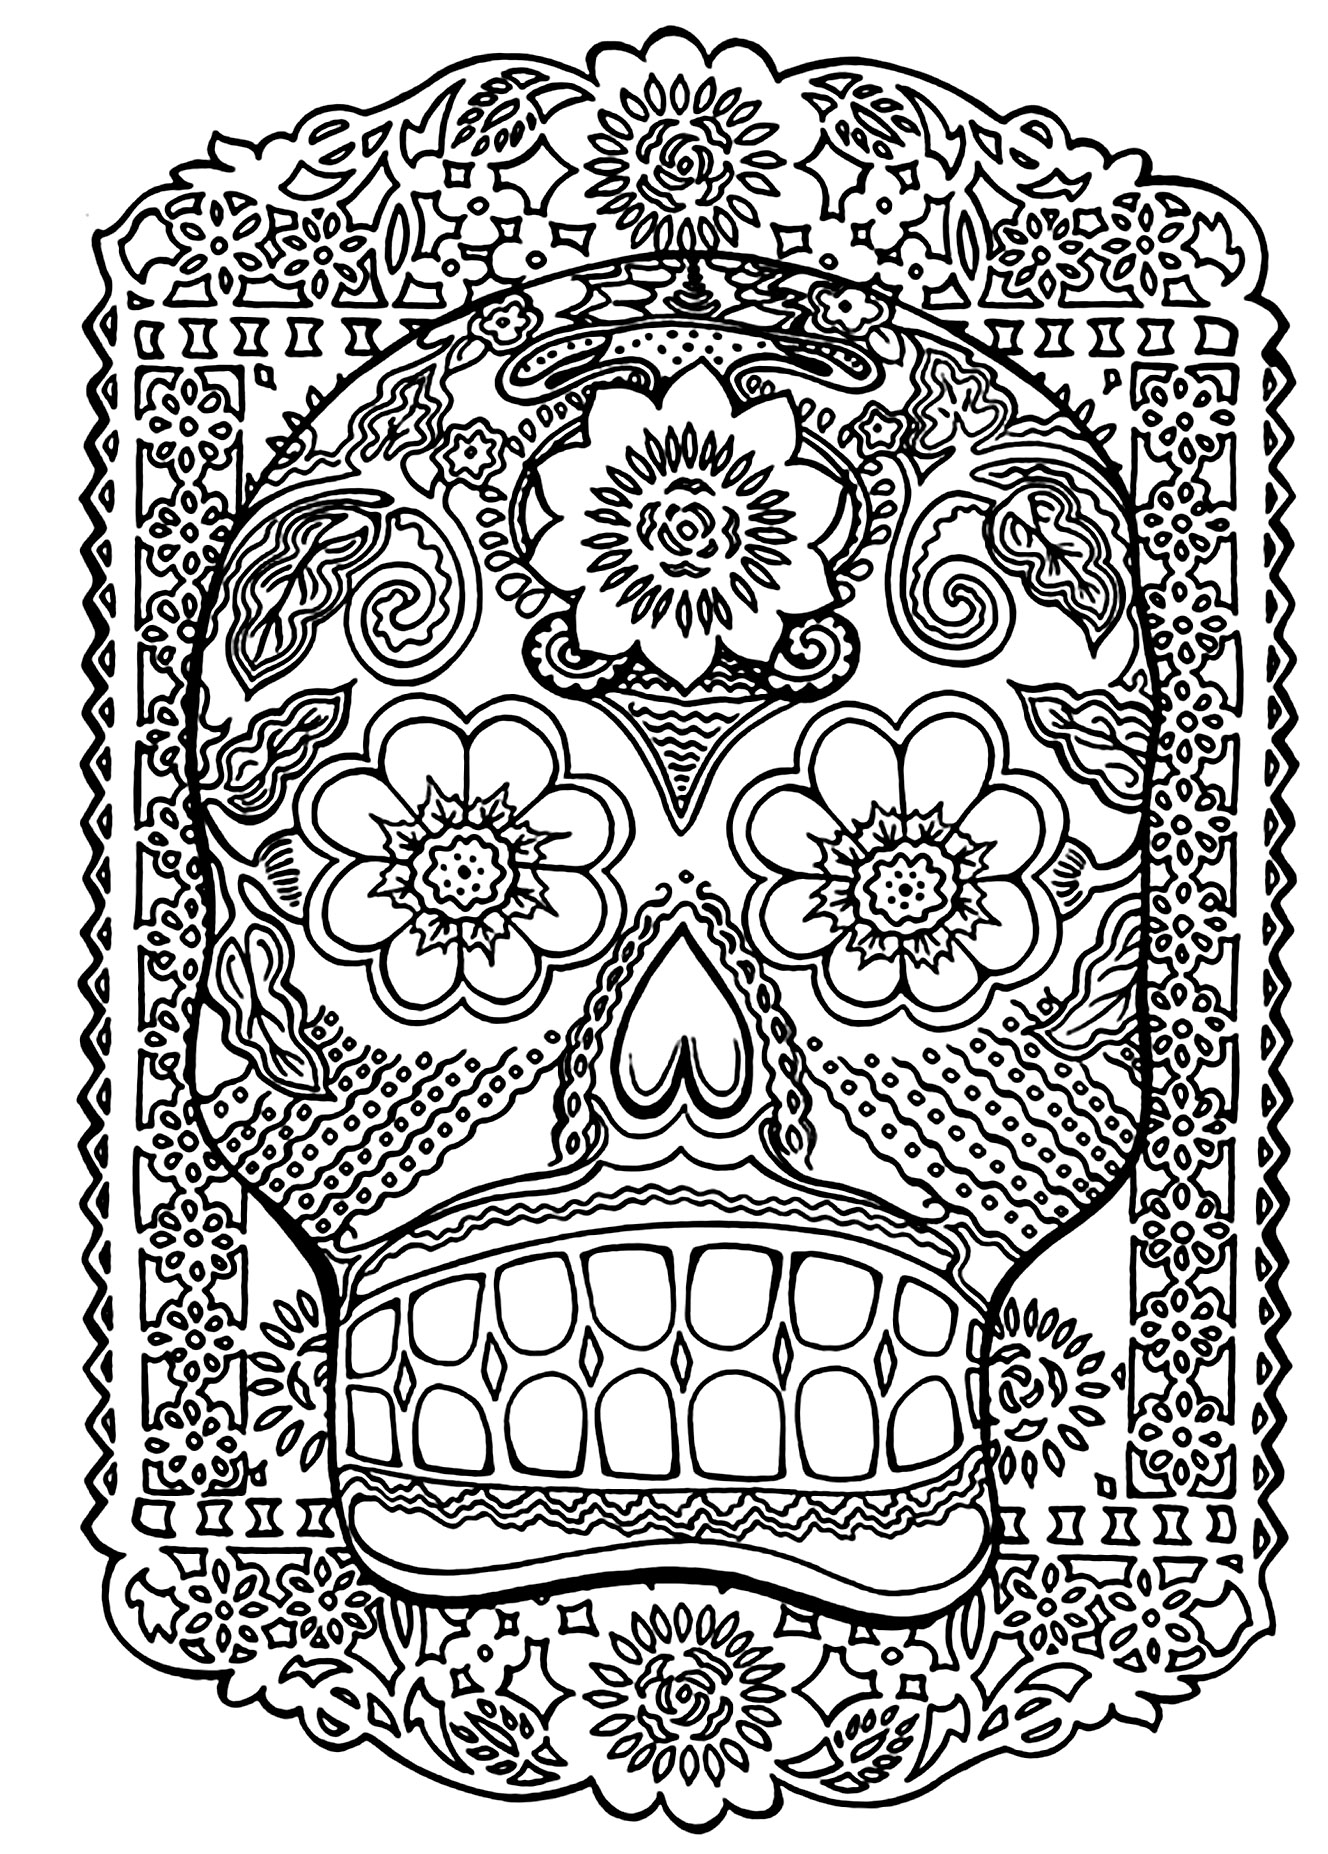 Stress coloring books - Skull Head Antistress Image With Dias De Los Muertos Skull From The